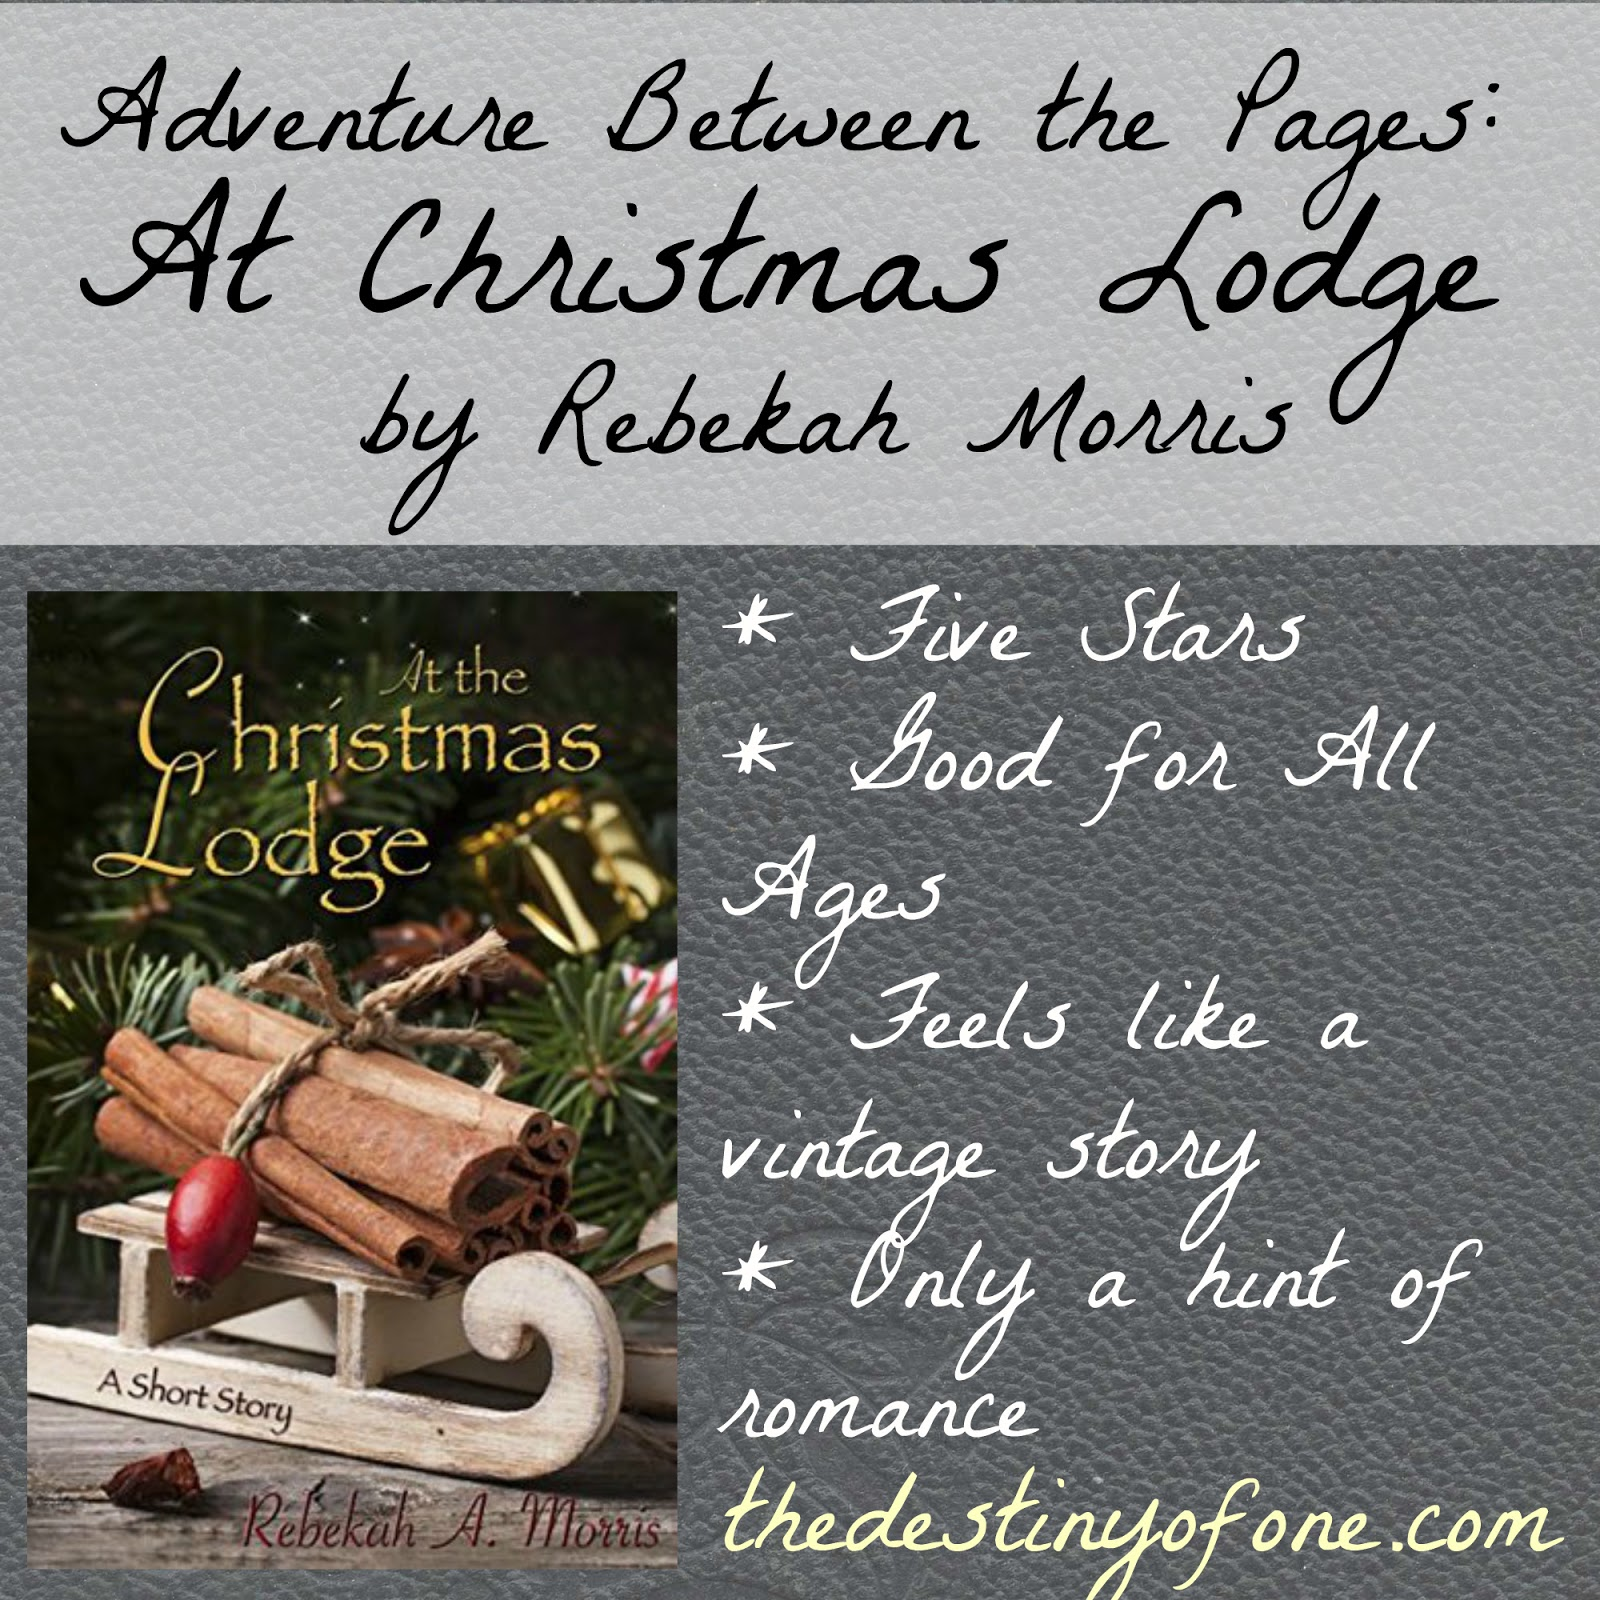 The Christmas Lodge.The Destiny Of One Adventure Between The Pages At The